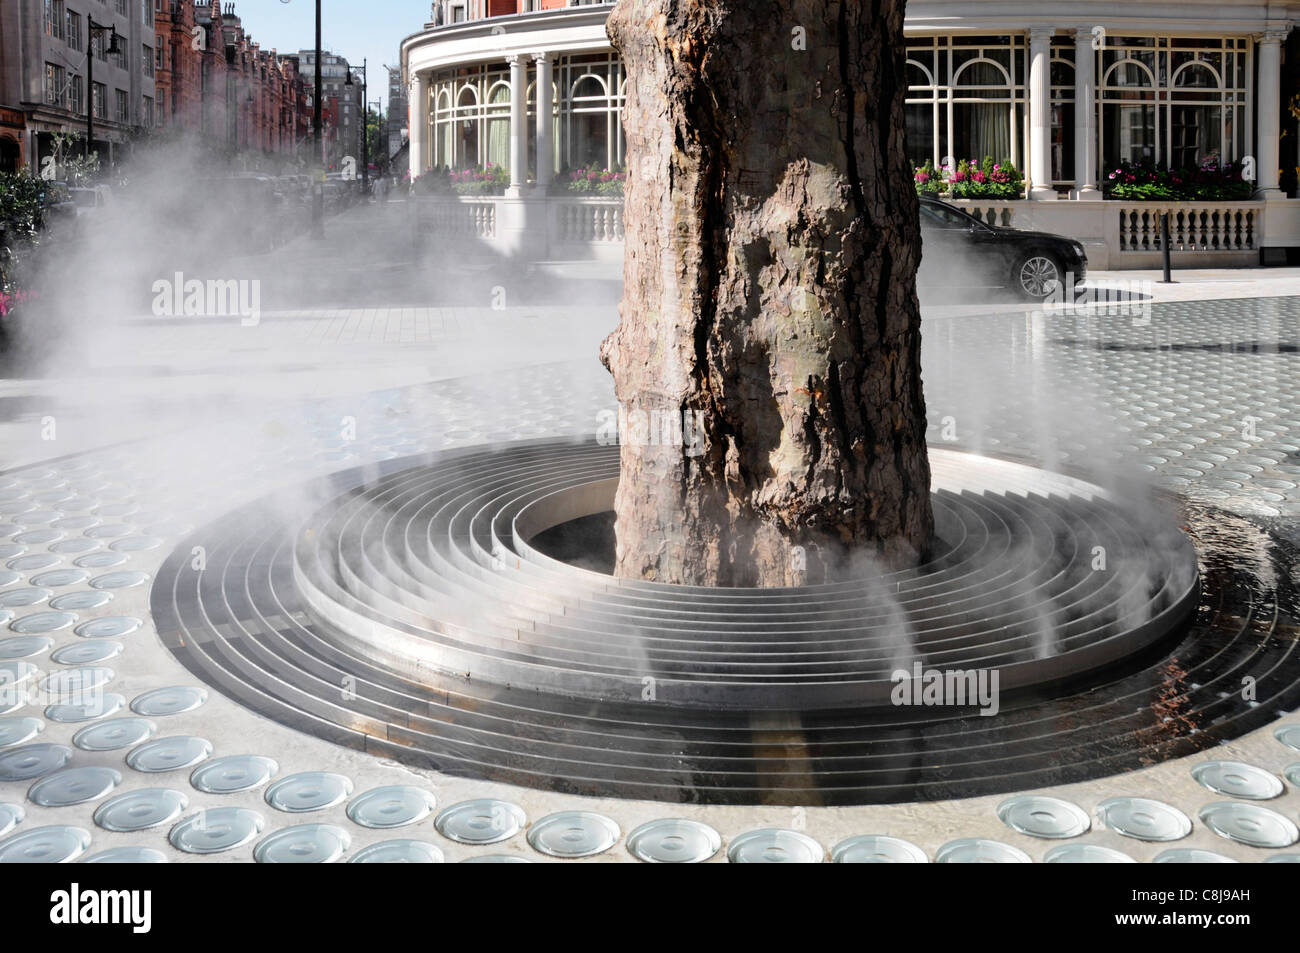 Close up of grill around tree trunk for atomiser to create steam mist vapour cloud to drift over Tadao Ando 'Silence' - Stock Image